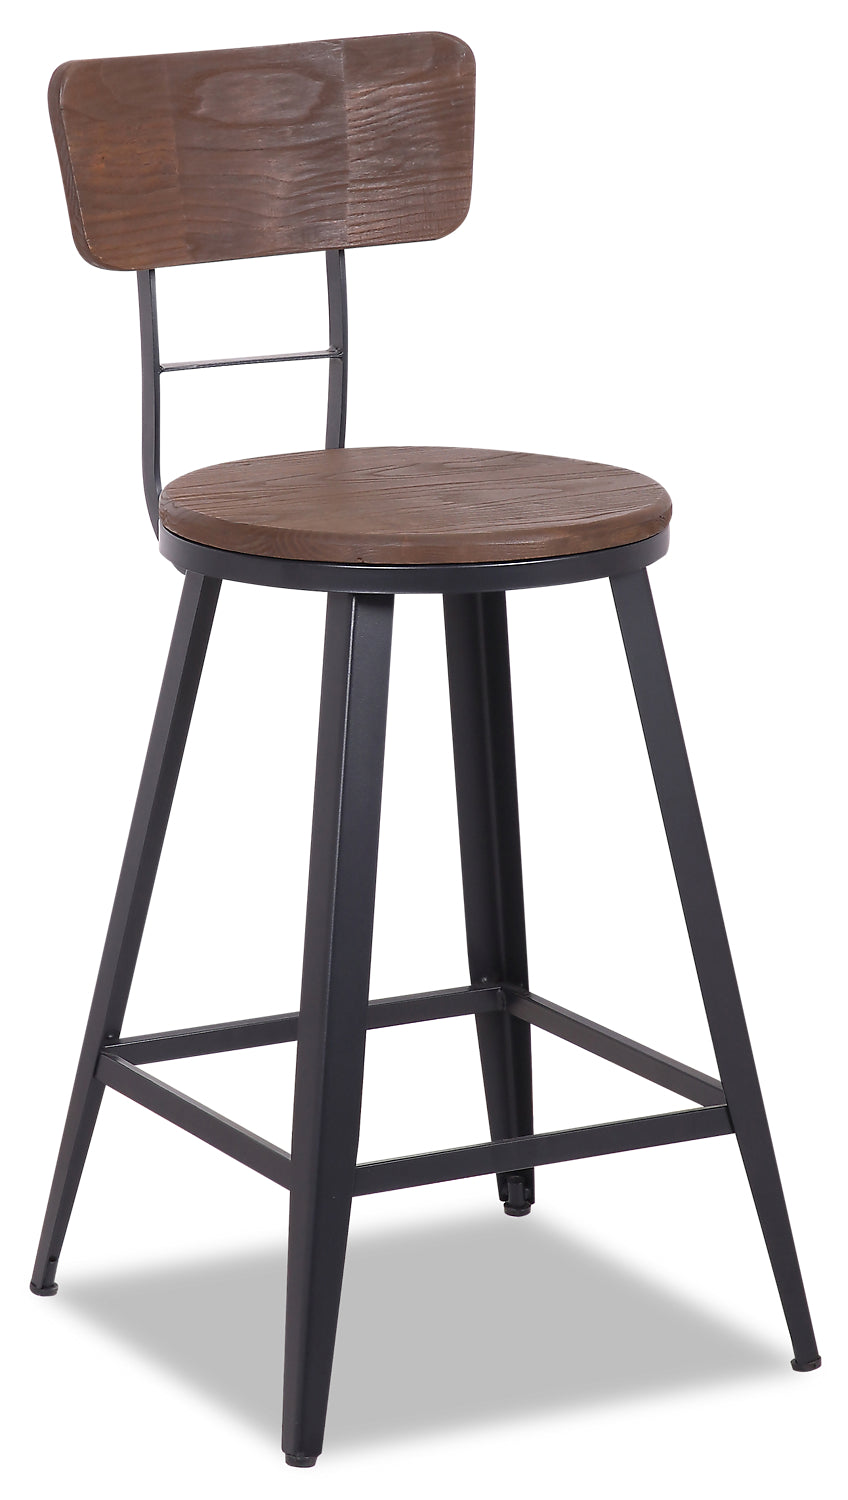 Image of: Mica Counter Height Bar Stool The Brick